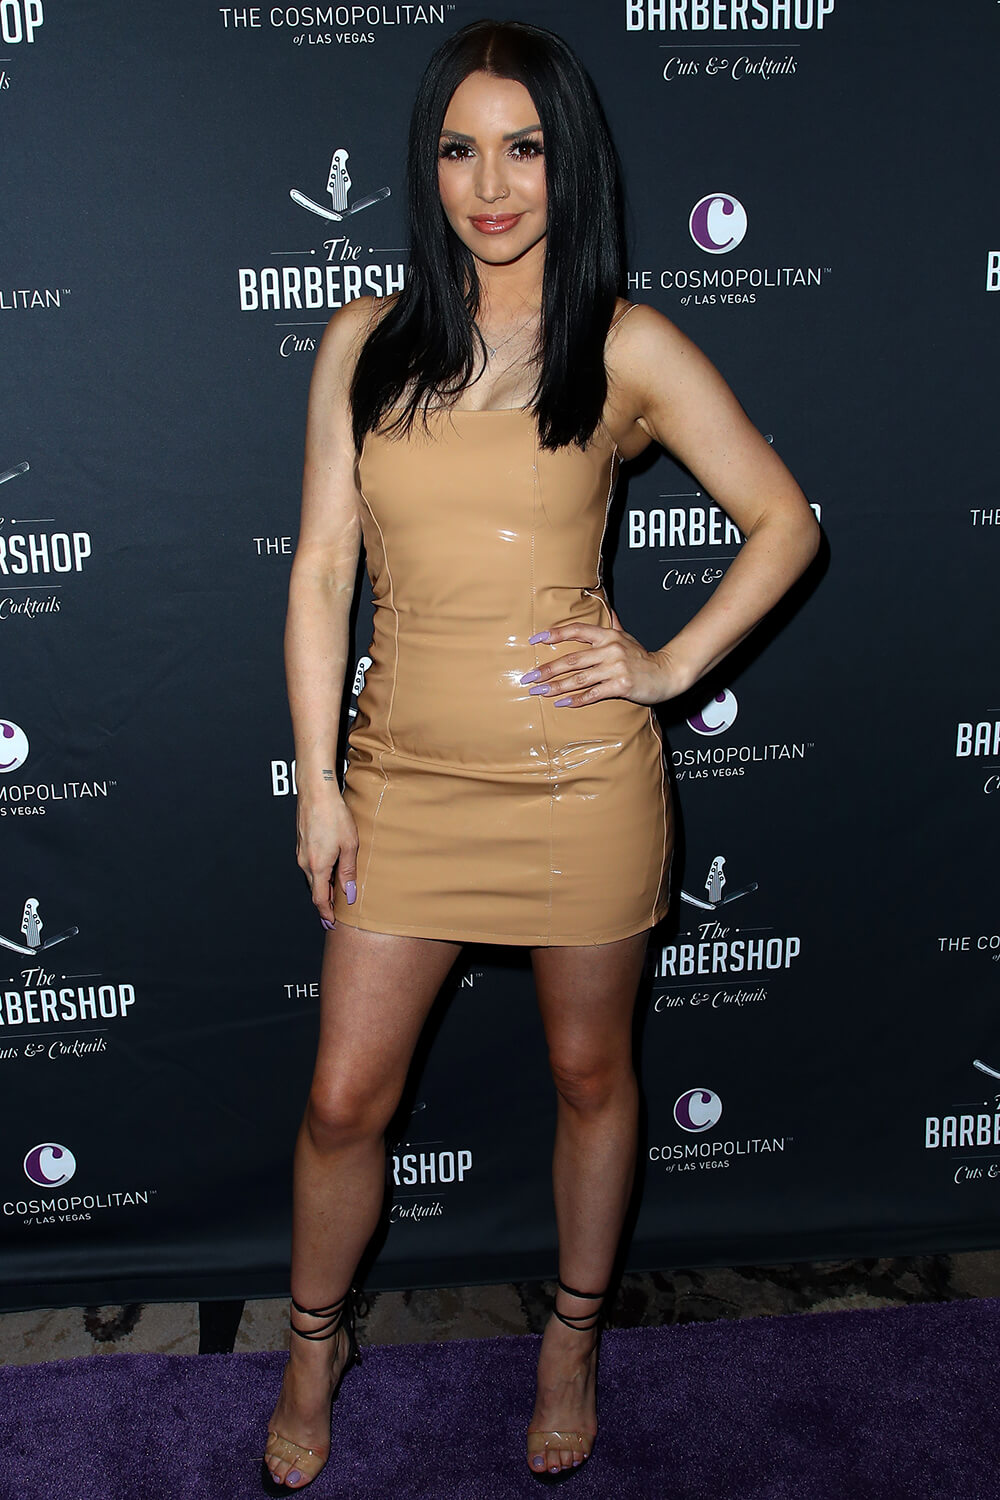 Scheana Marie attends The Barbershop Cuts & Cocktails Grand Opening